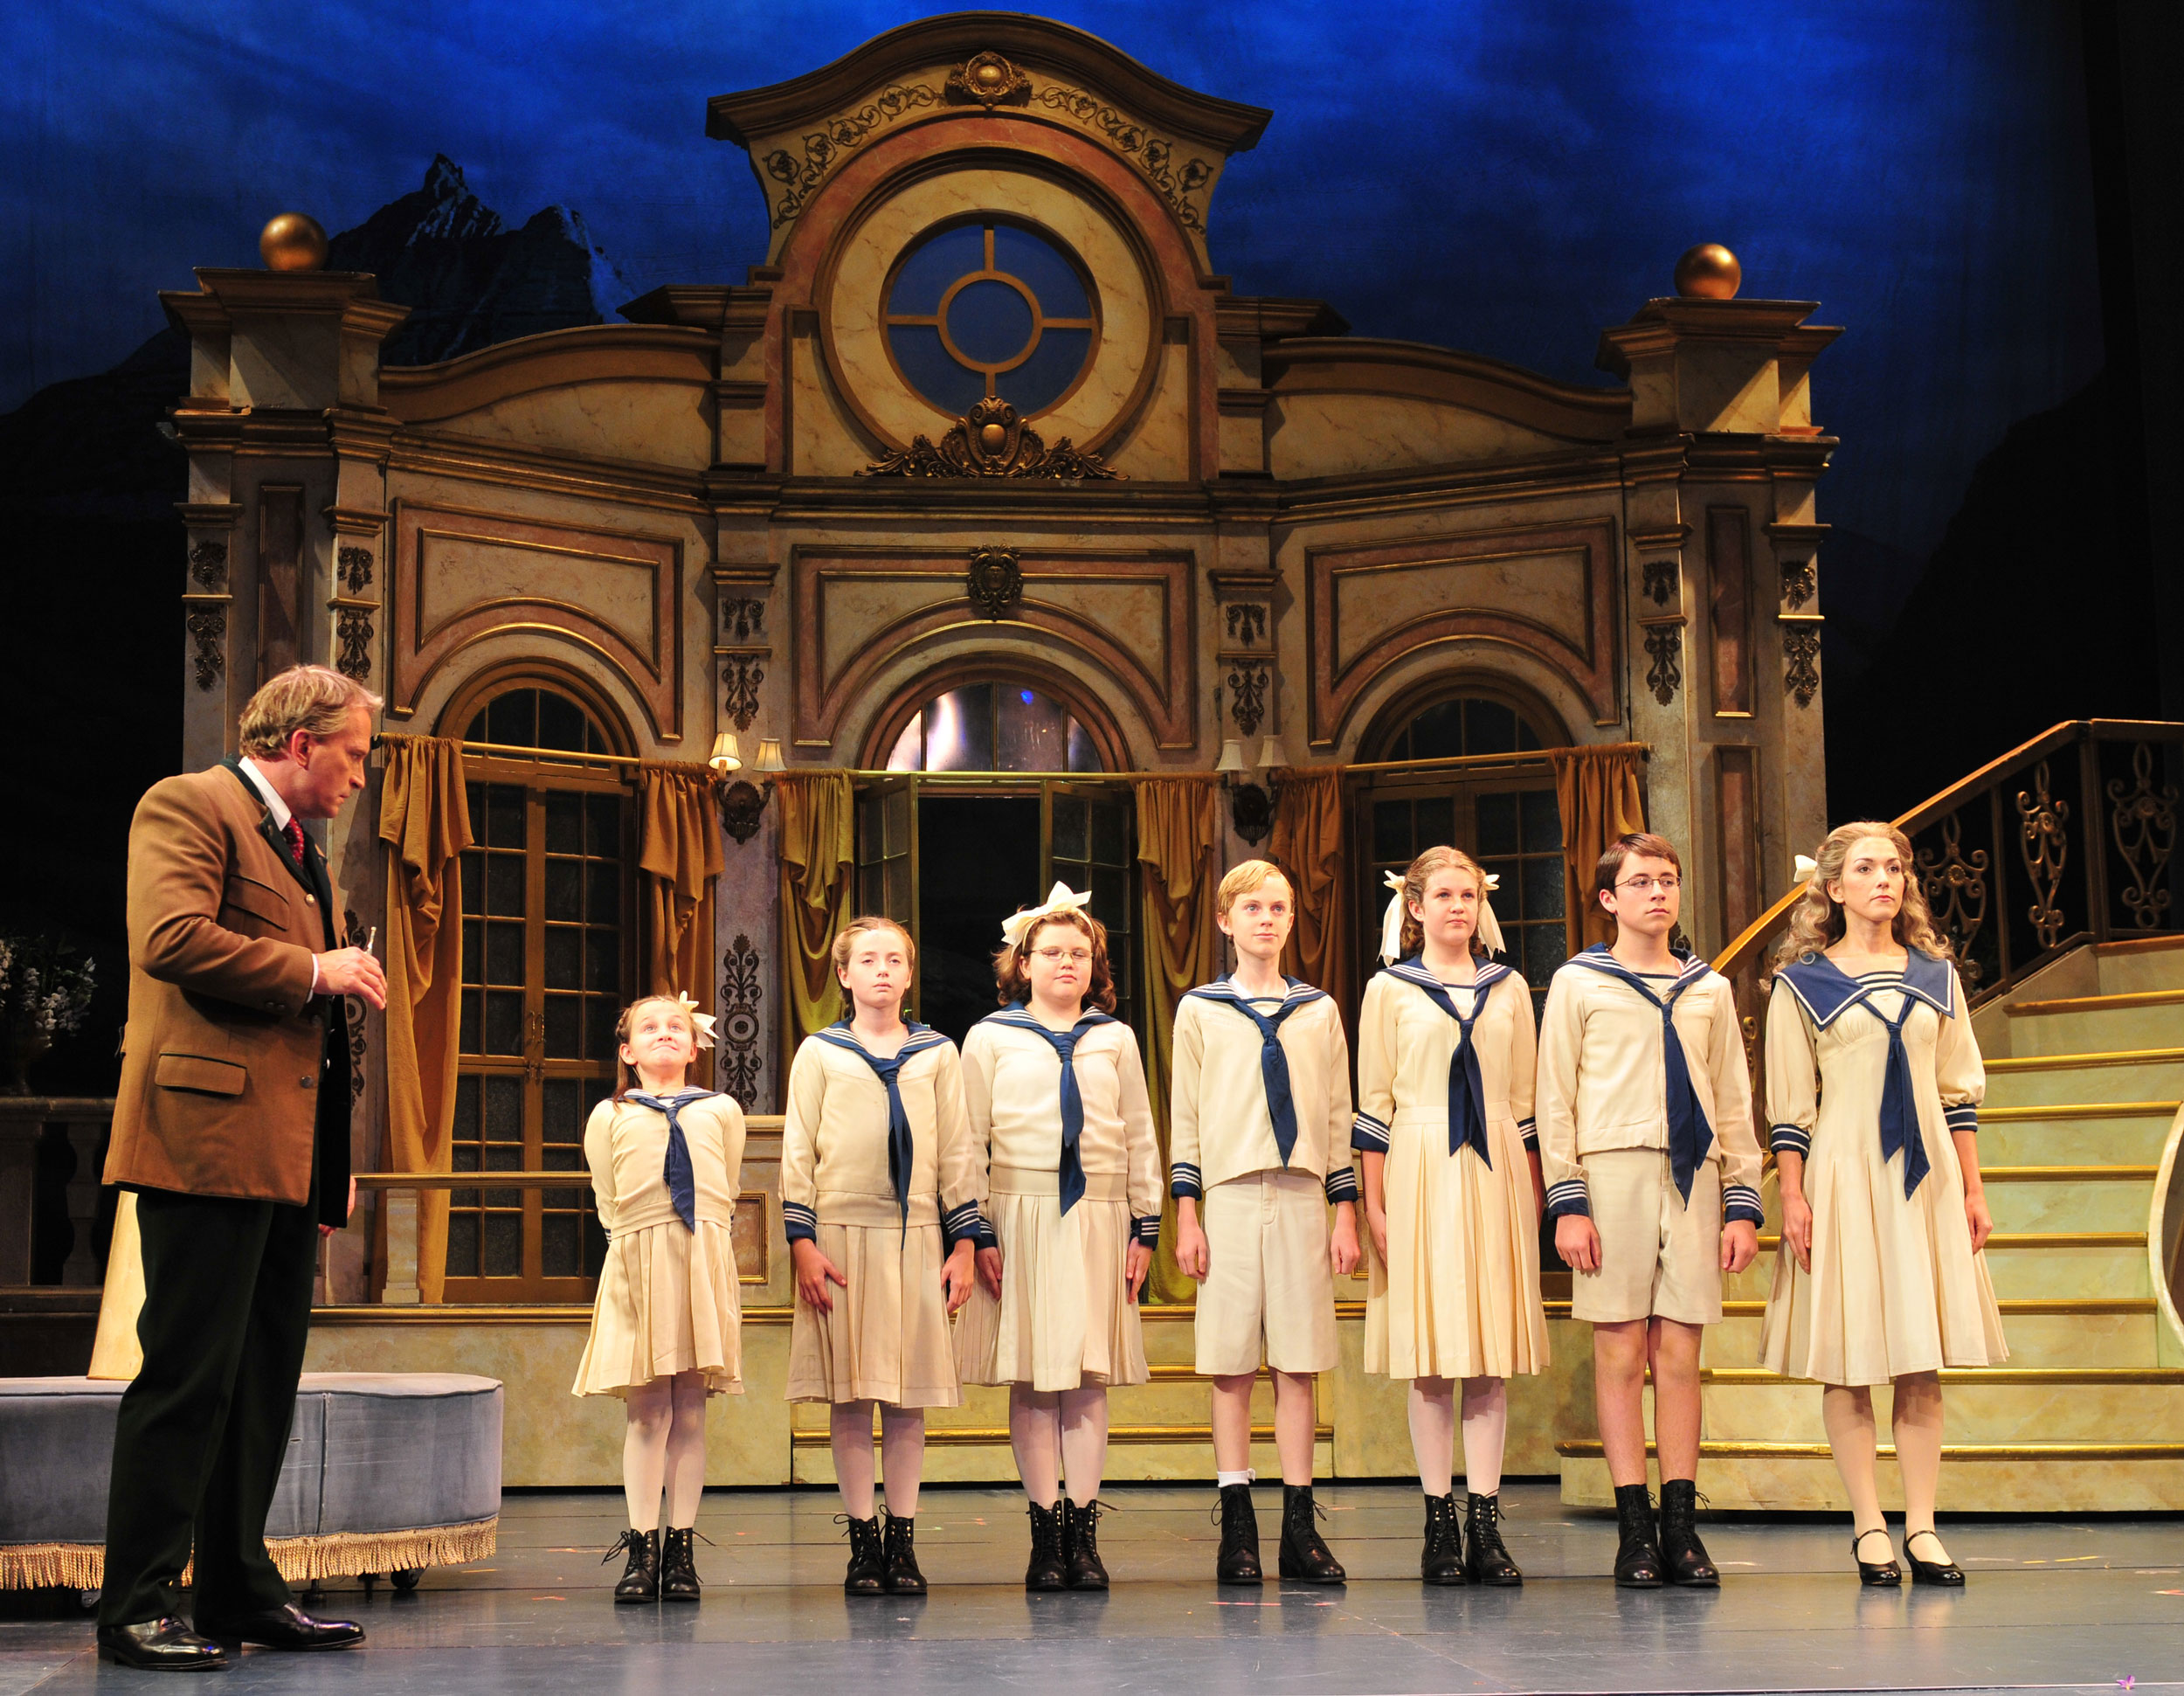 2010_OP_The-Sound-of-Music_Rex-Smith_as_Captain-von-Trapp_and_von-Trapp-Children_photo-by_Gary-Ng_RGB.jpg